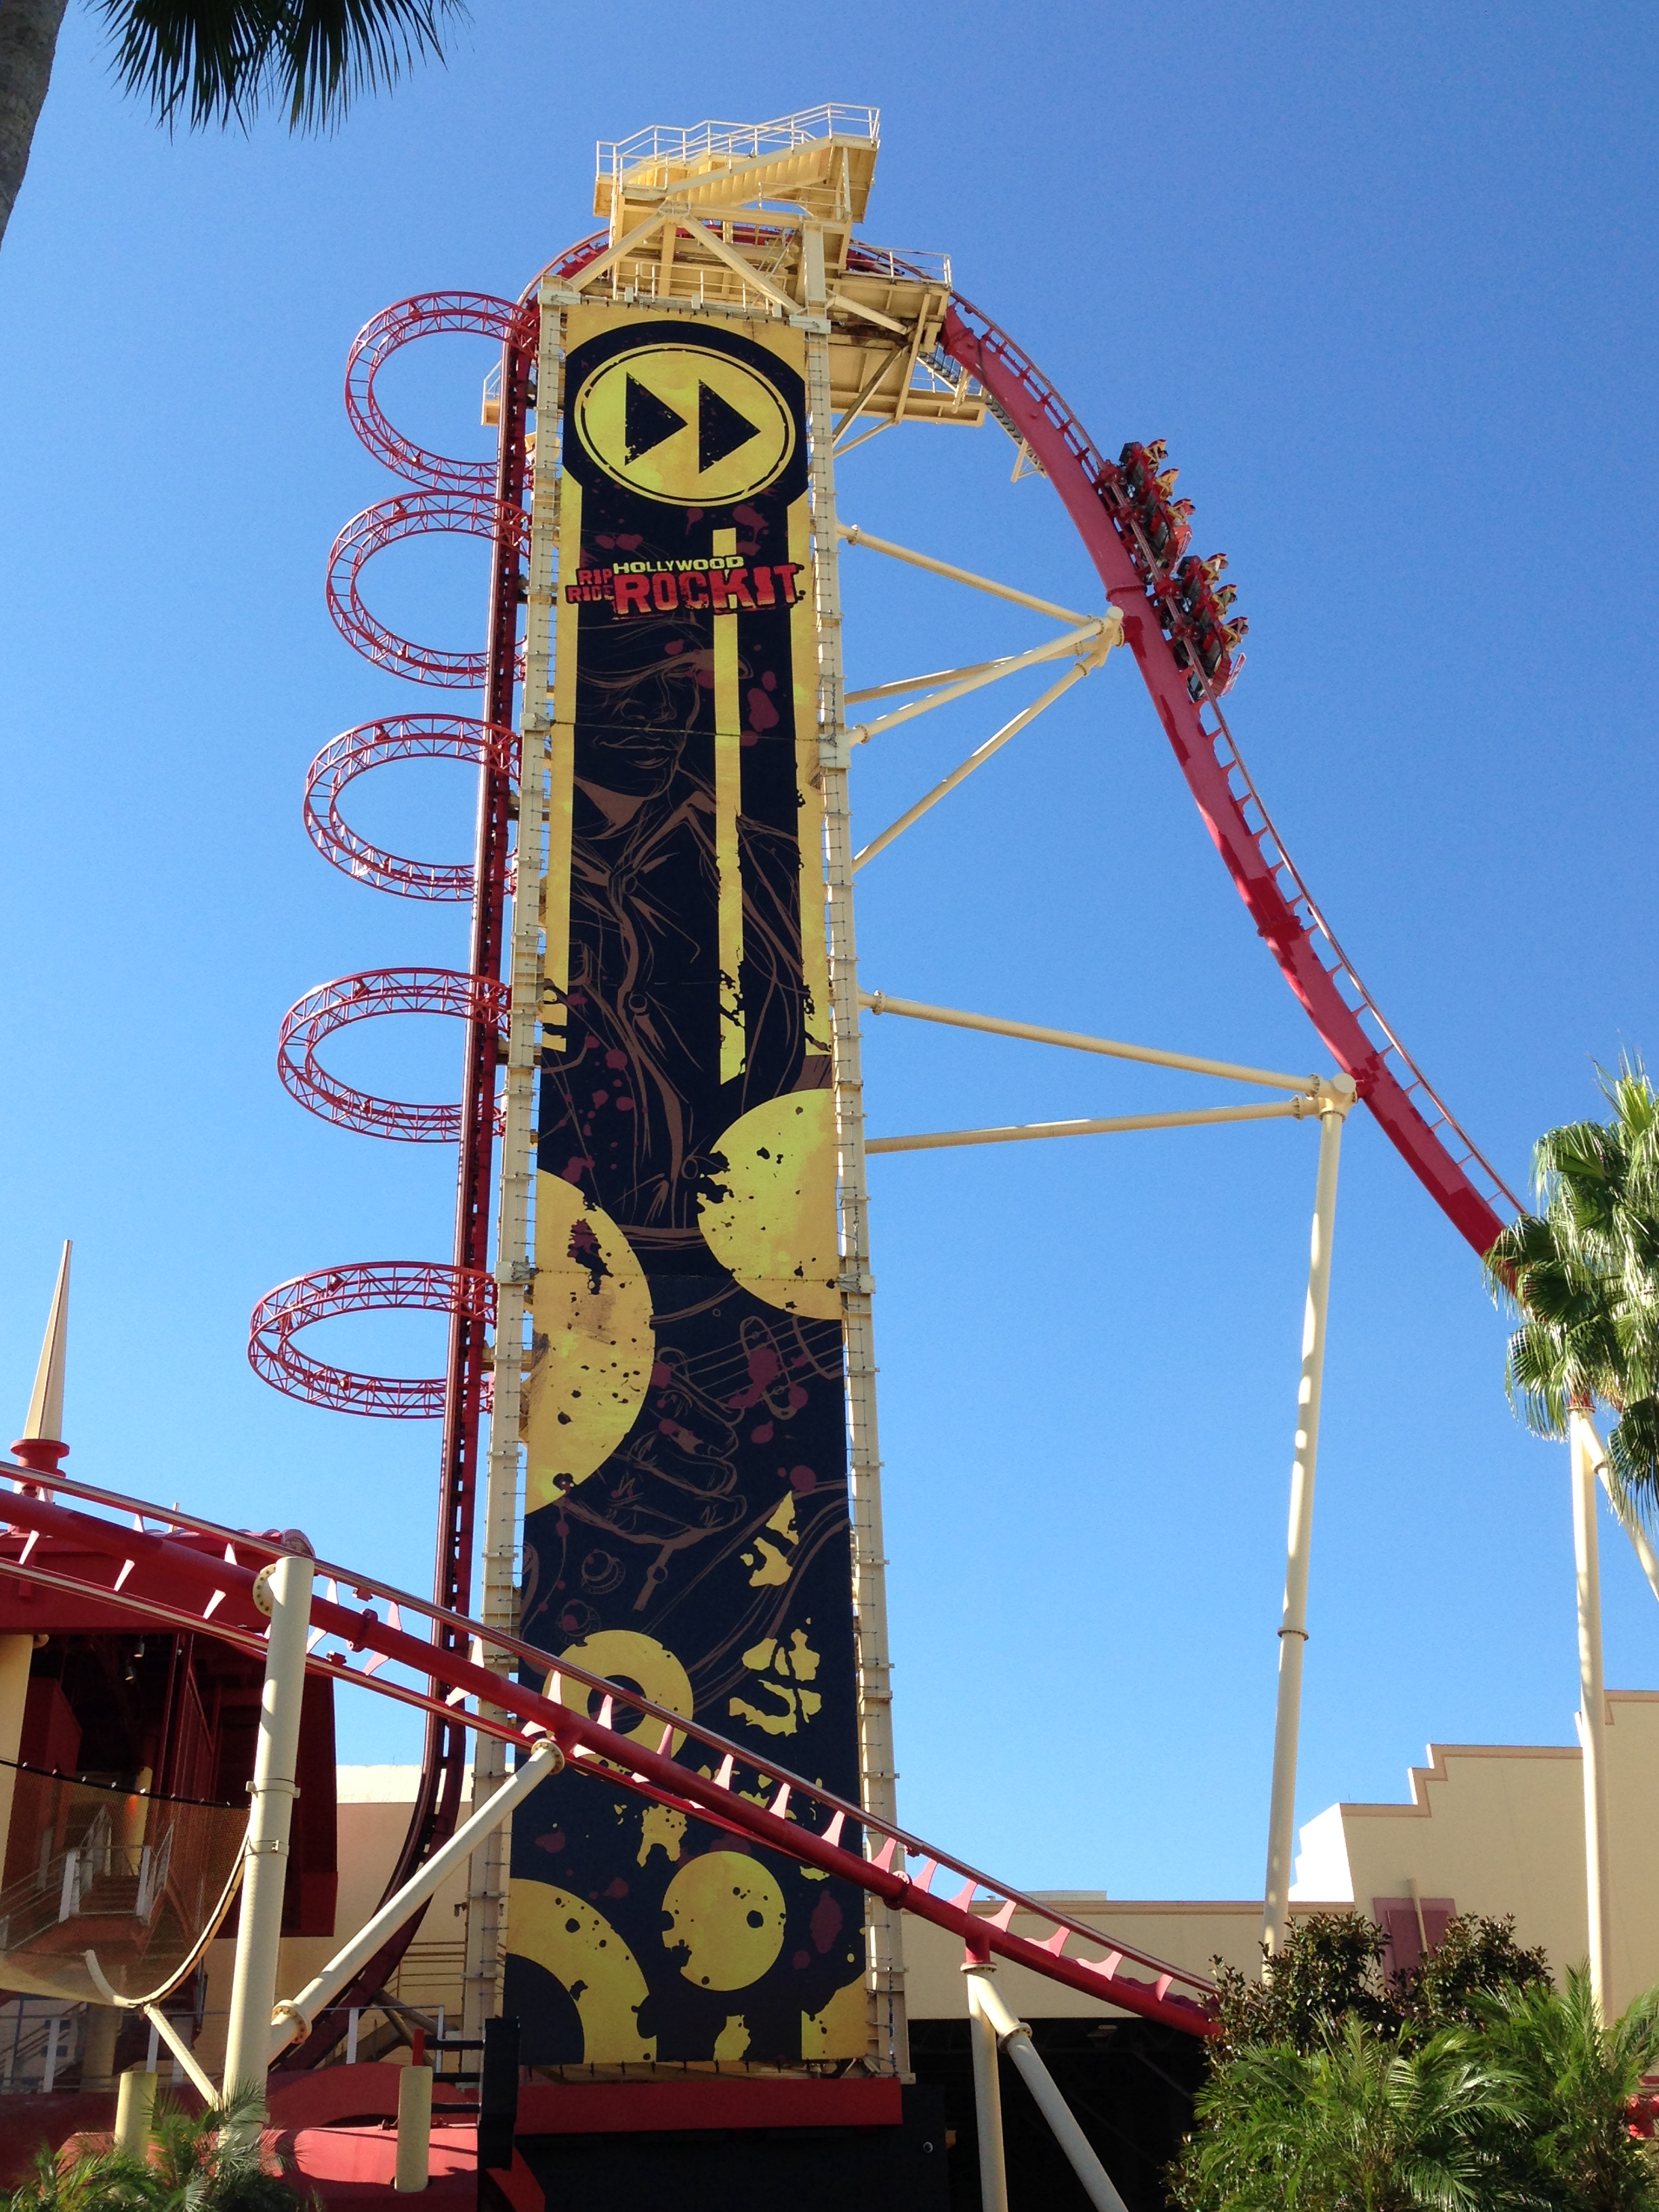 Hollywod Rip Ride Rockit